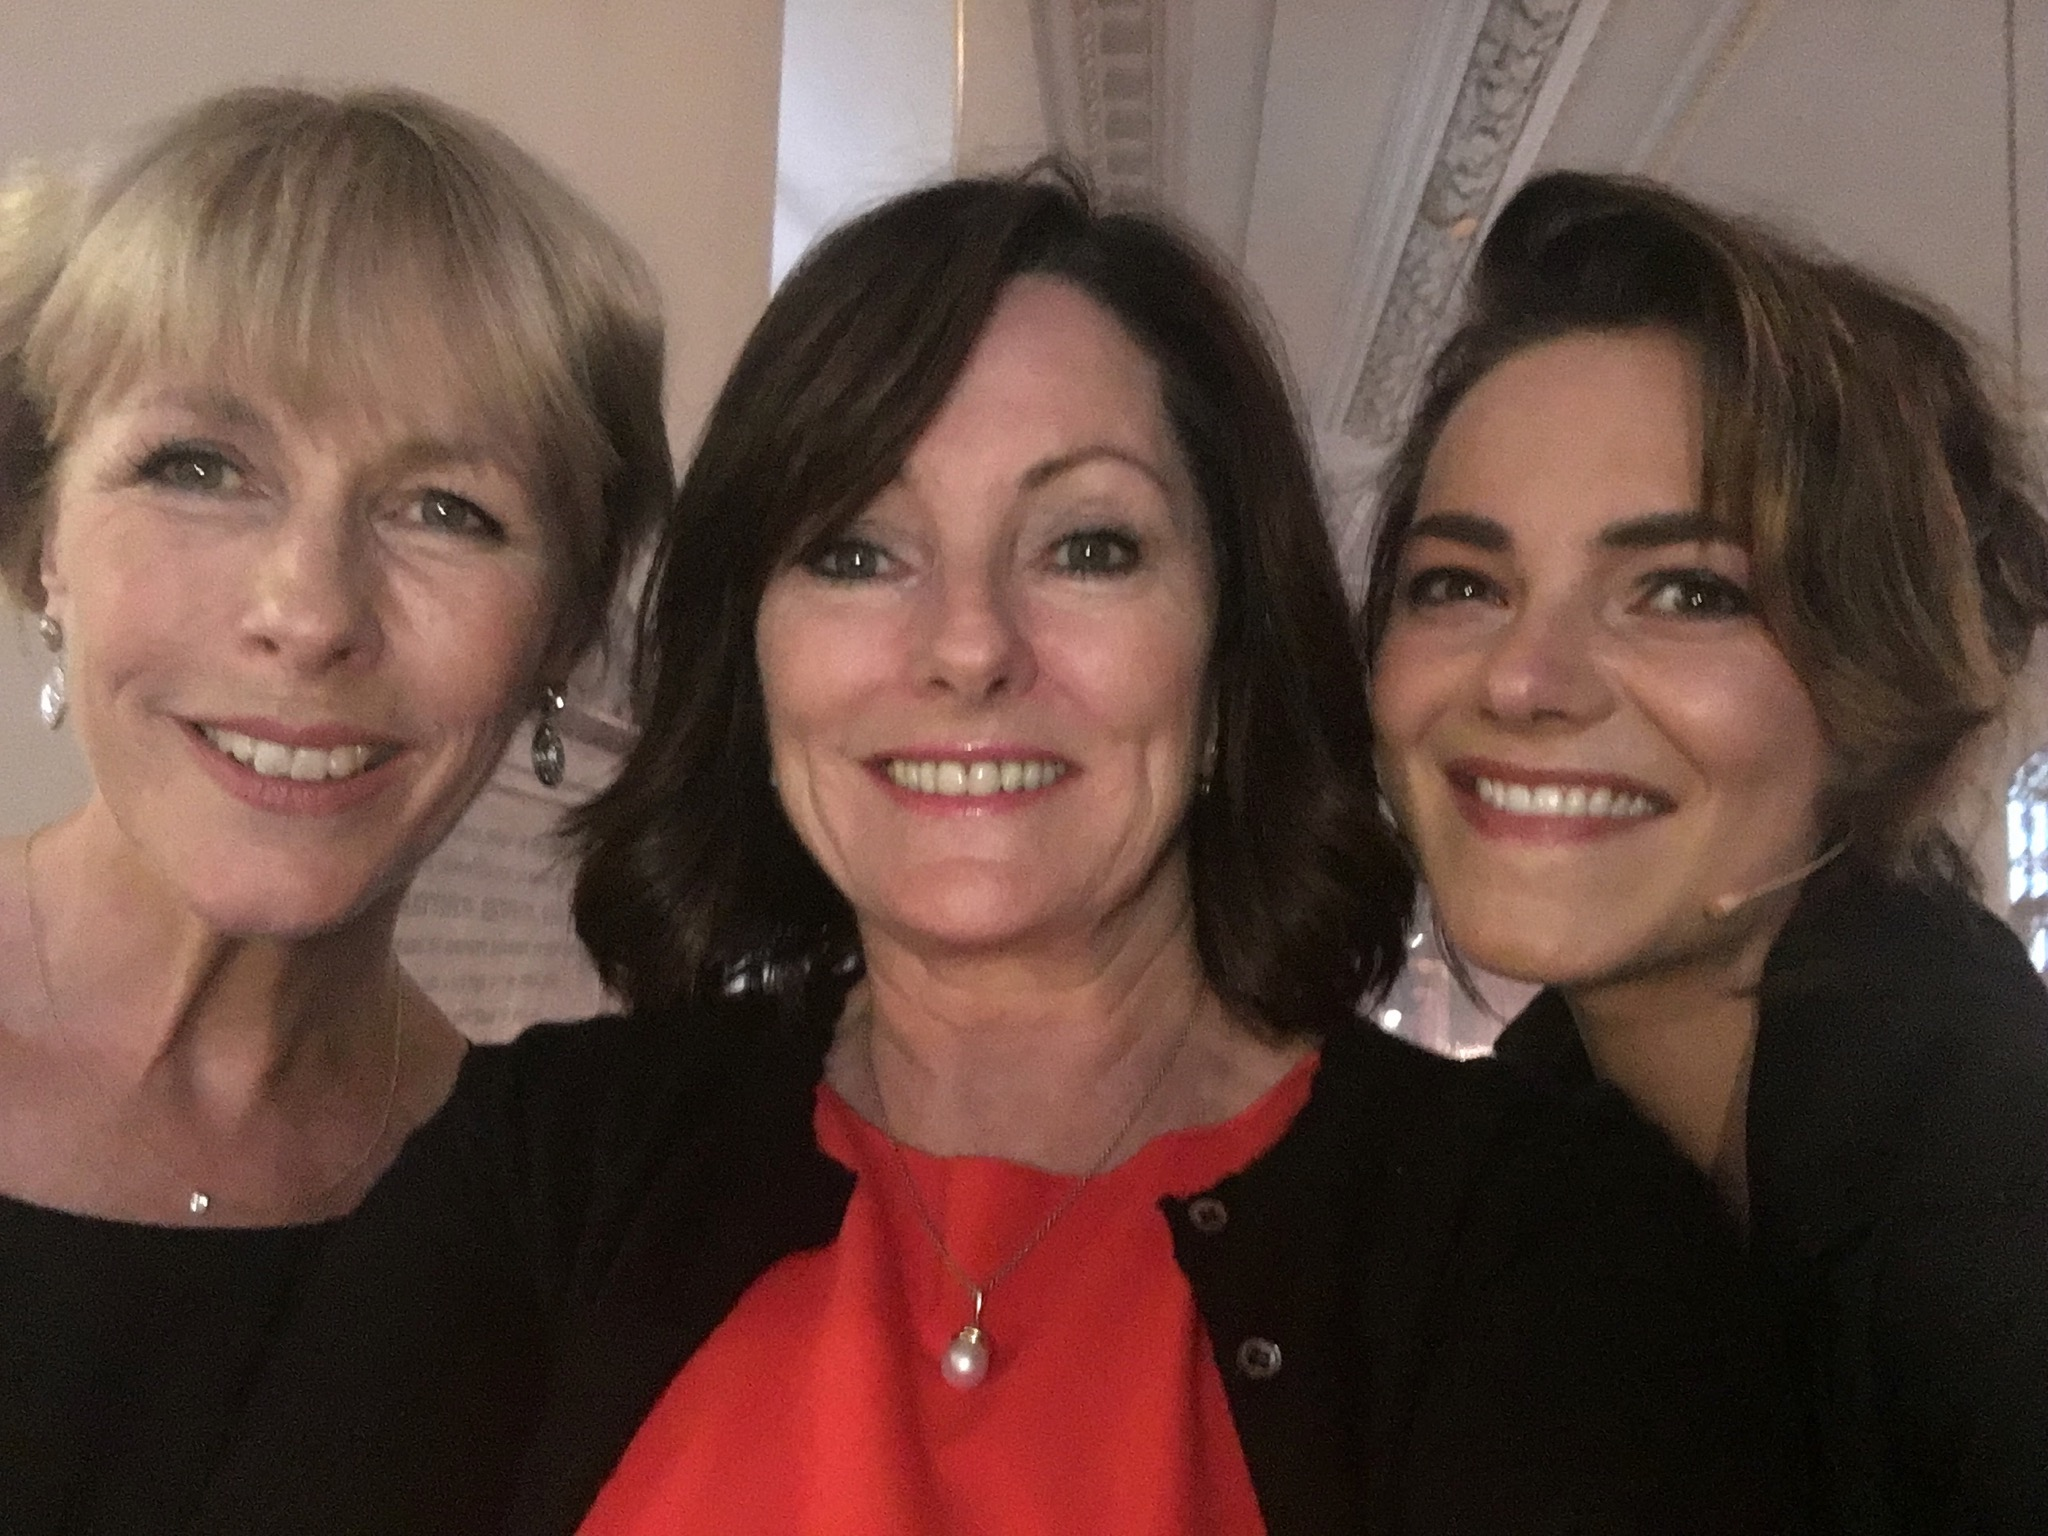 Jacquie Storey with Liz Robertson and Kara Thointon at My Fair Lady 60th celebrations in Covent Garden Summer 2016. Choreographed by yours truly!